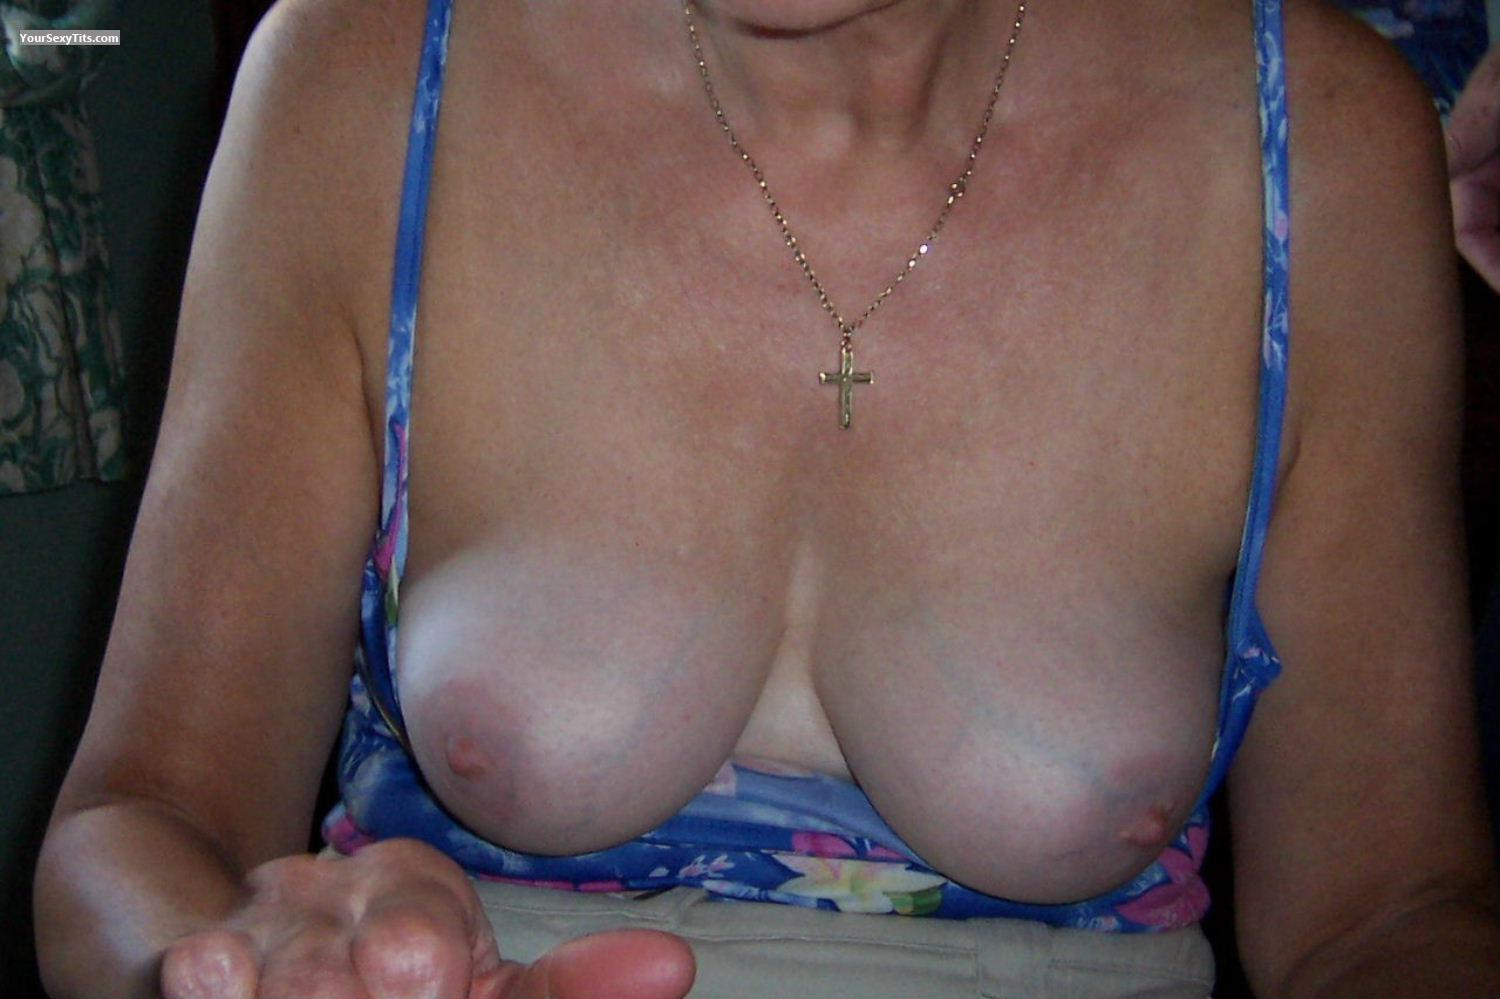 Tit Flash: Medium Tits - BubblySally from United Kingdom